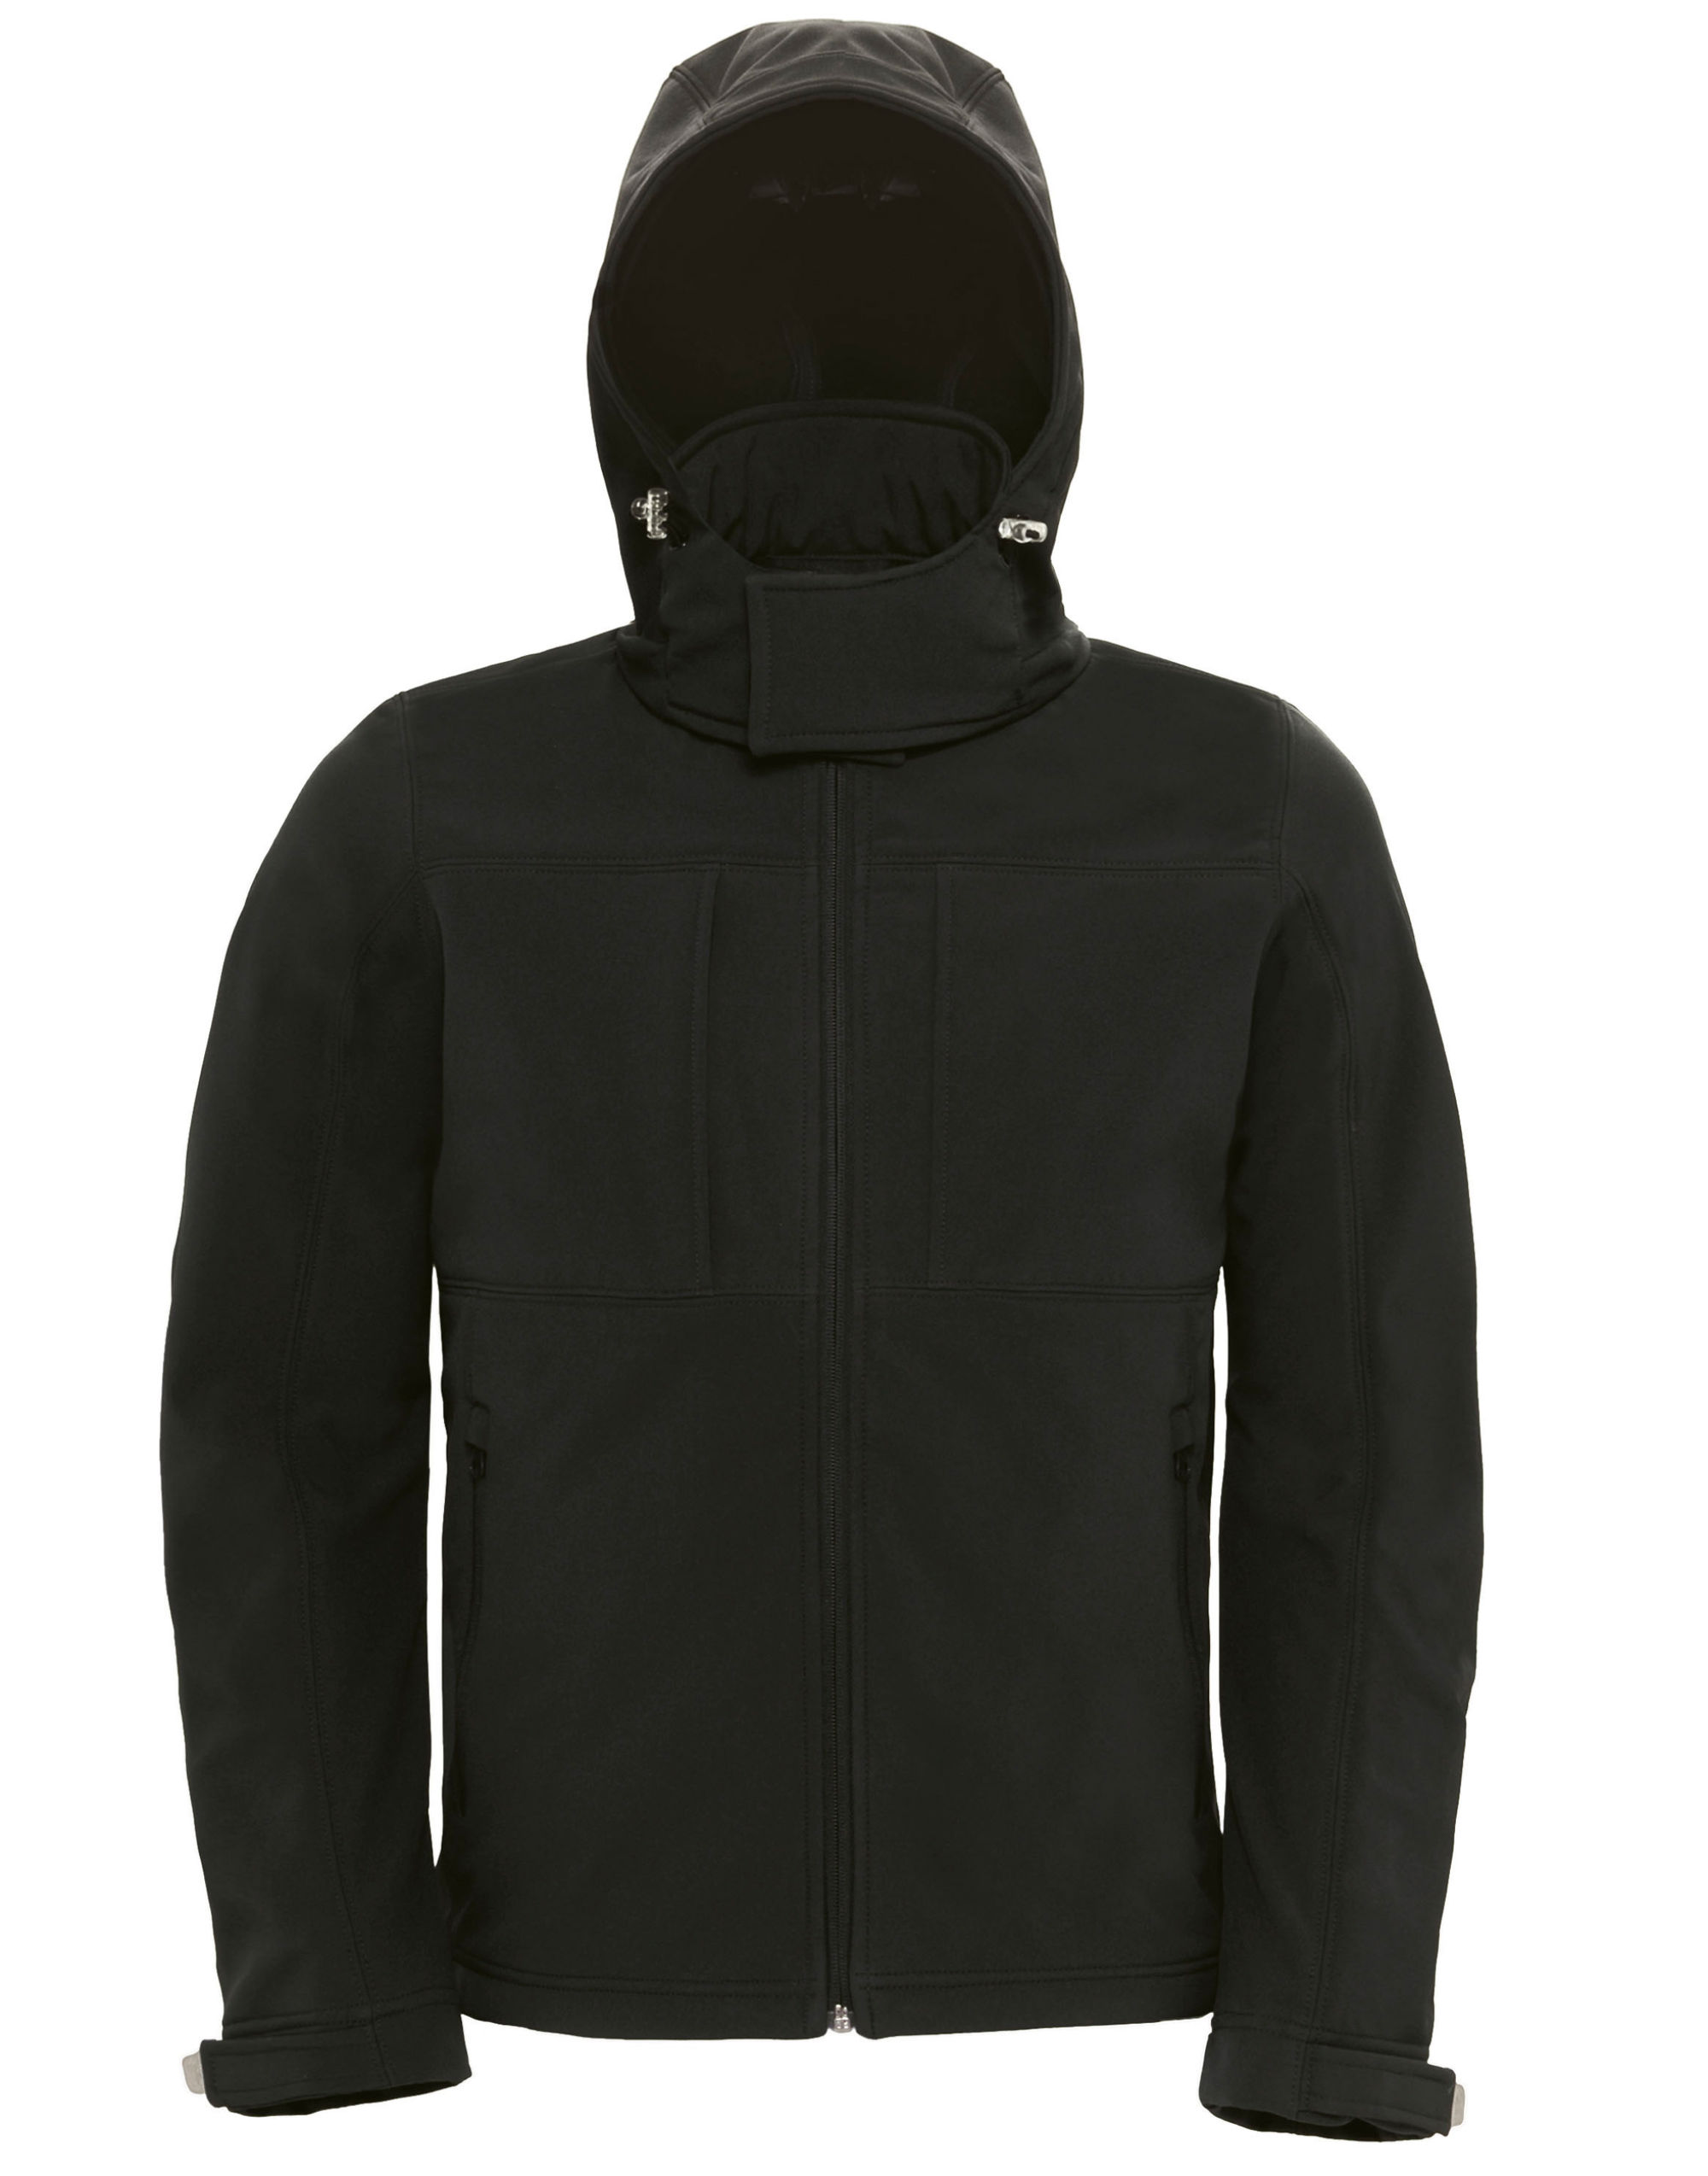 B&c Men's Hooded Softshell